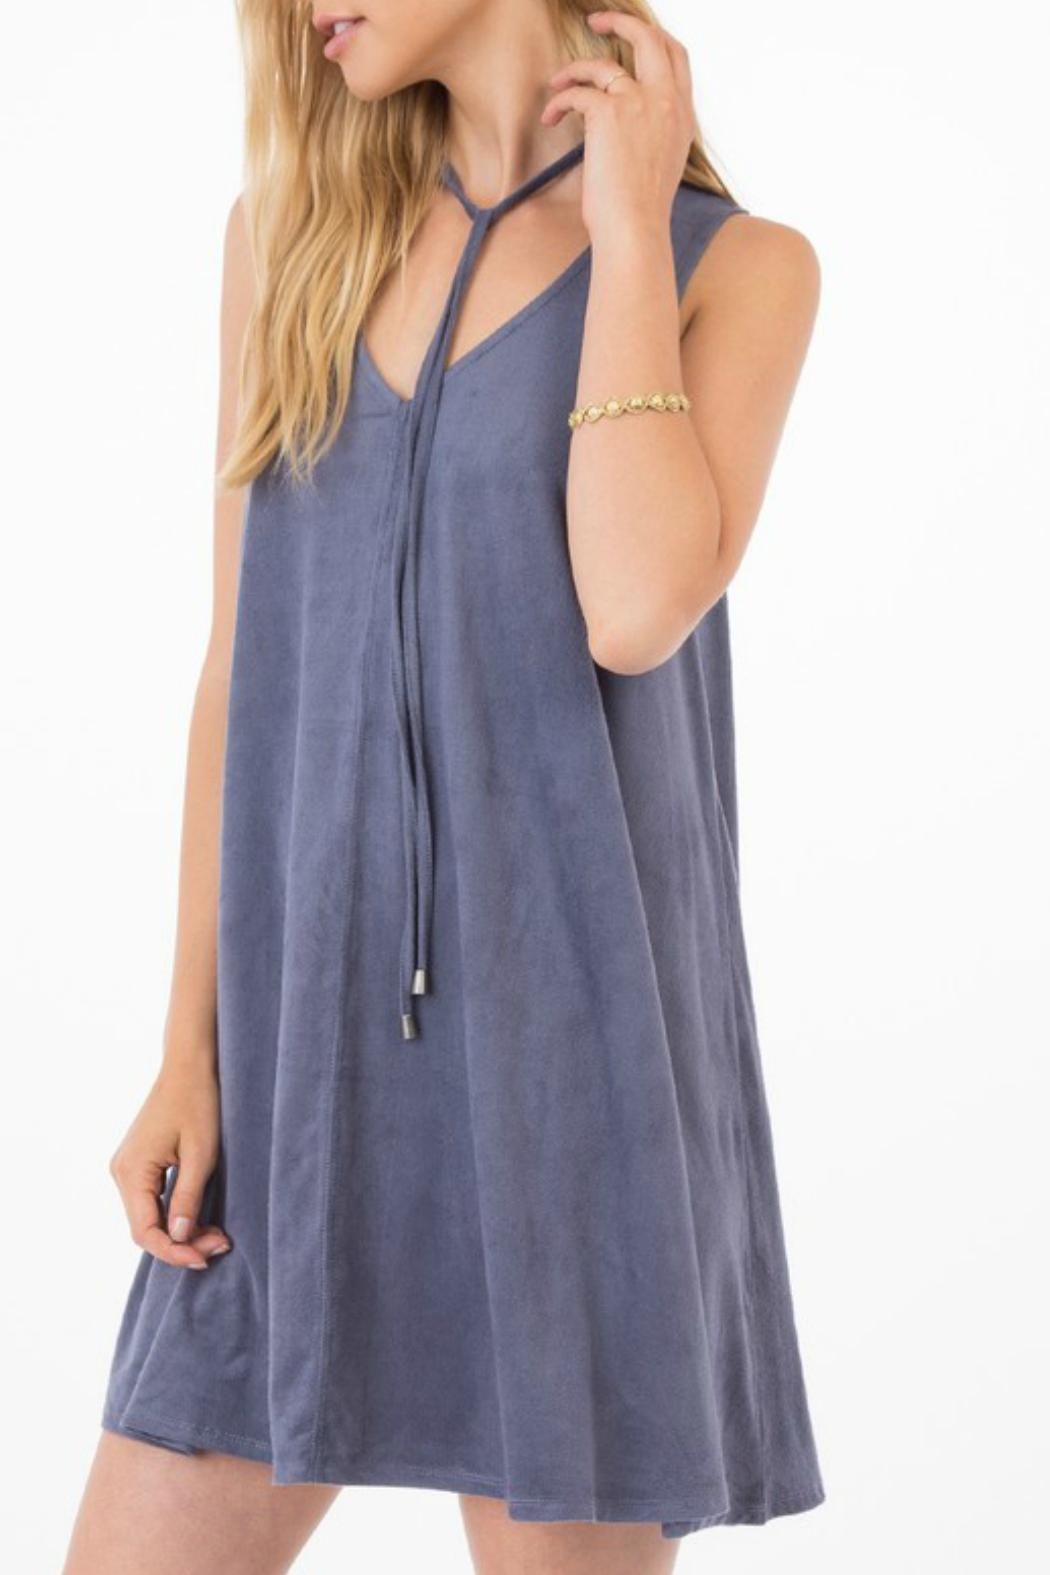 Others Follow  Elowan Suede Dress - Front Full Image